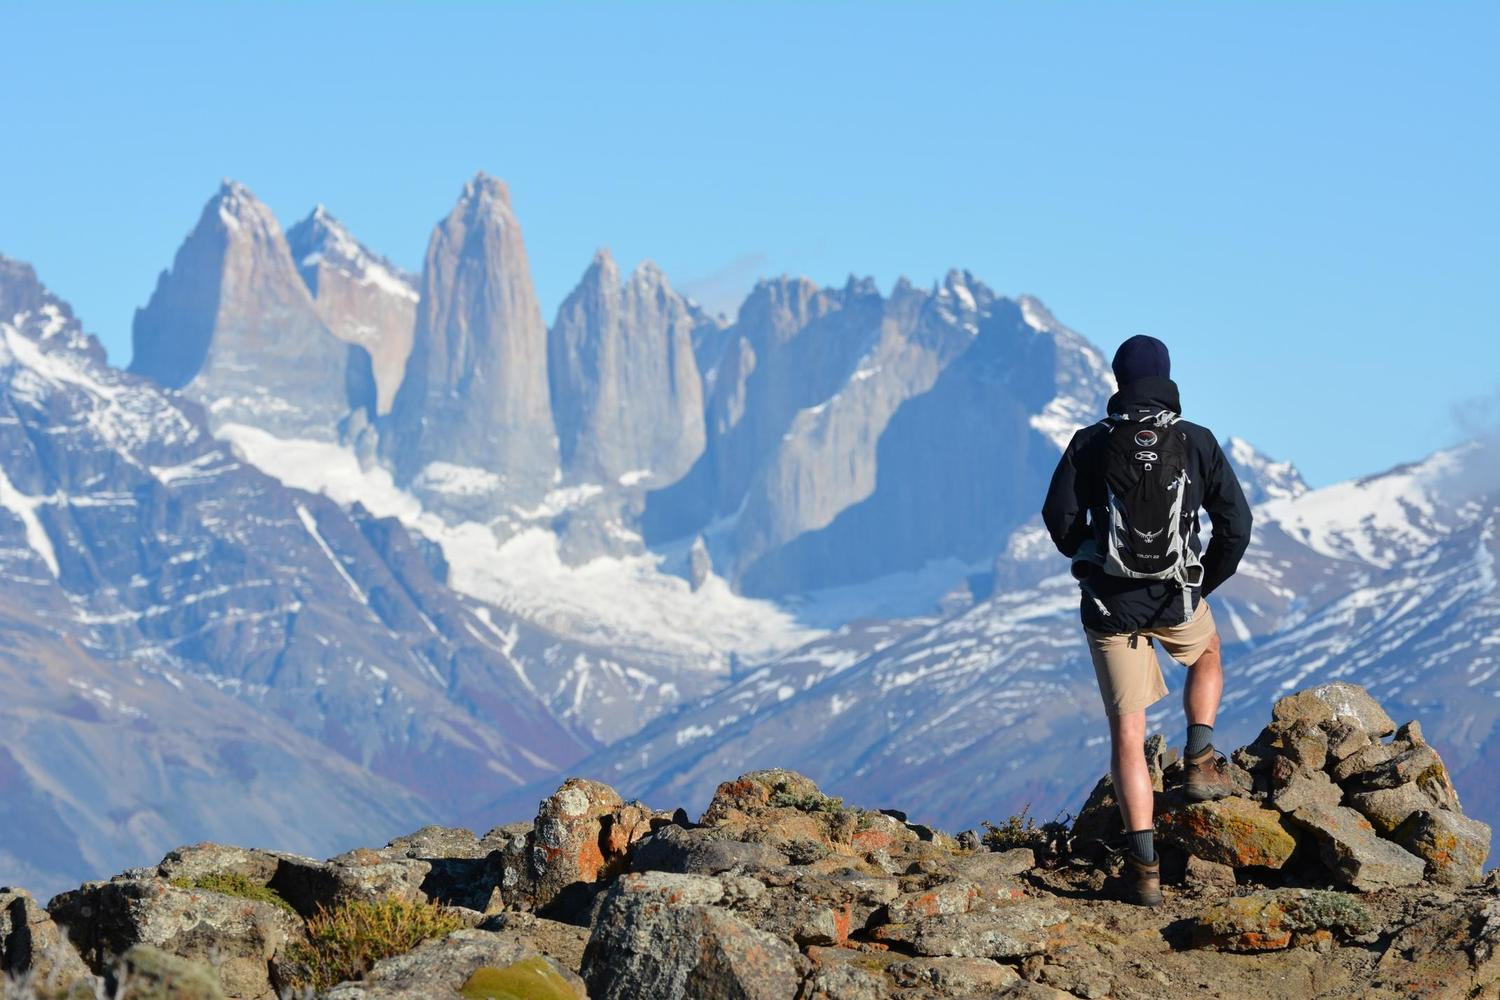 Great views from Las Cornisas just outside Torres del Paine park